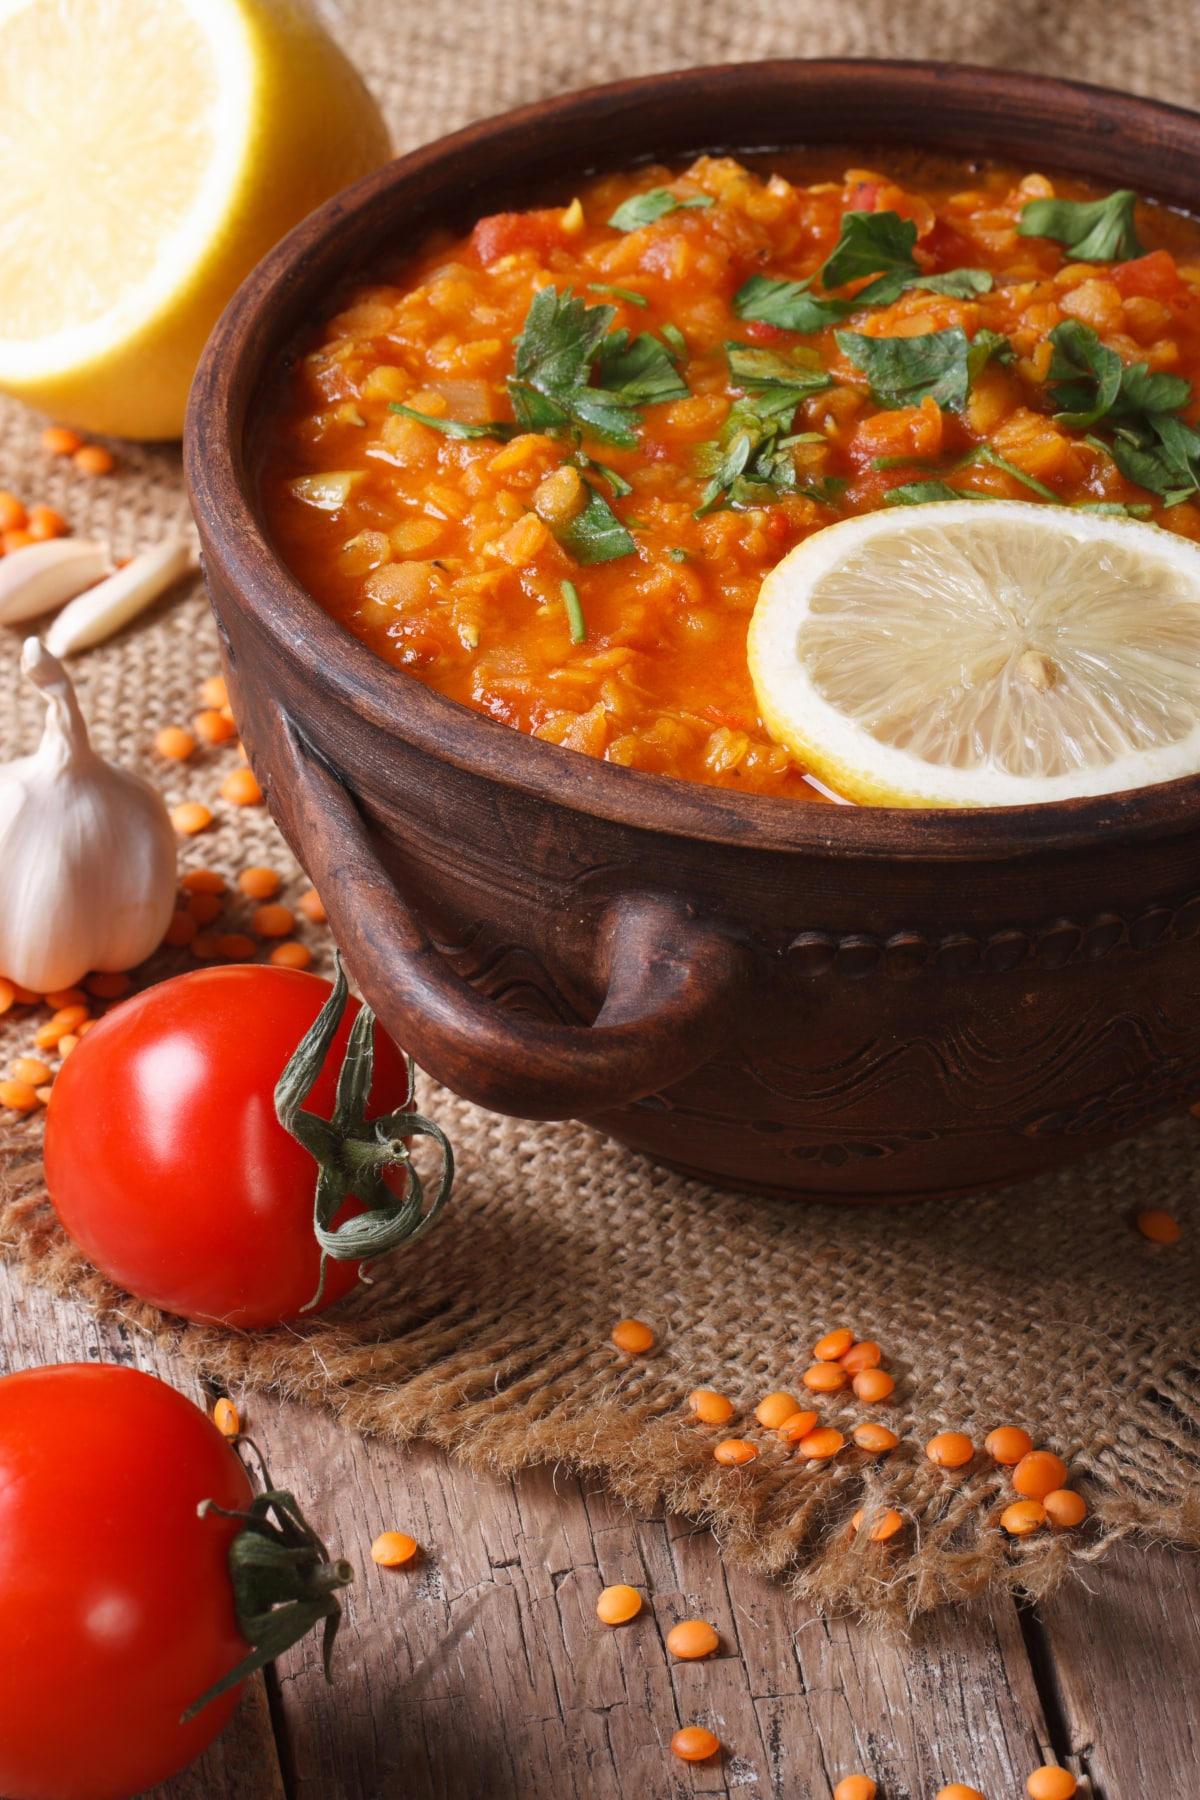 instant pot lentils soup with Moroccan spices in a rustic pot garnished with lemon and parsley.